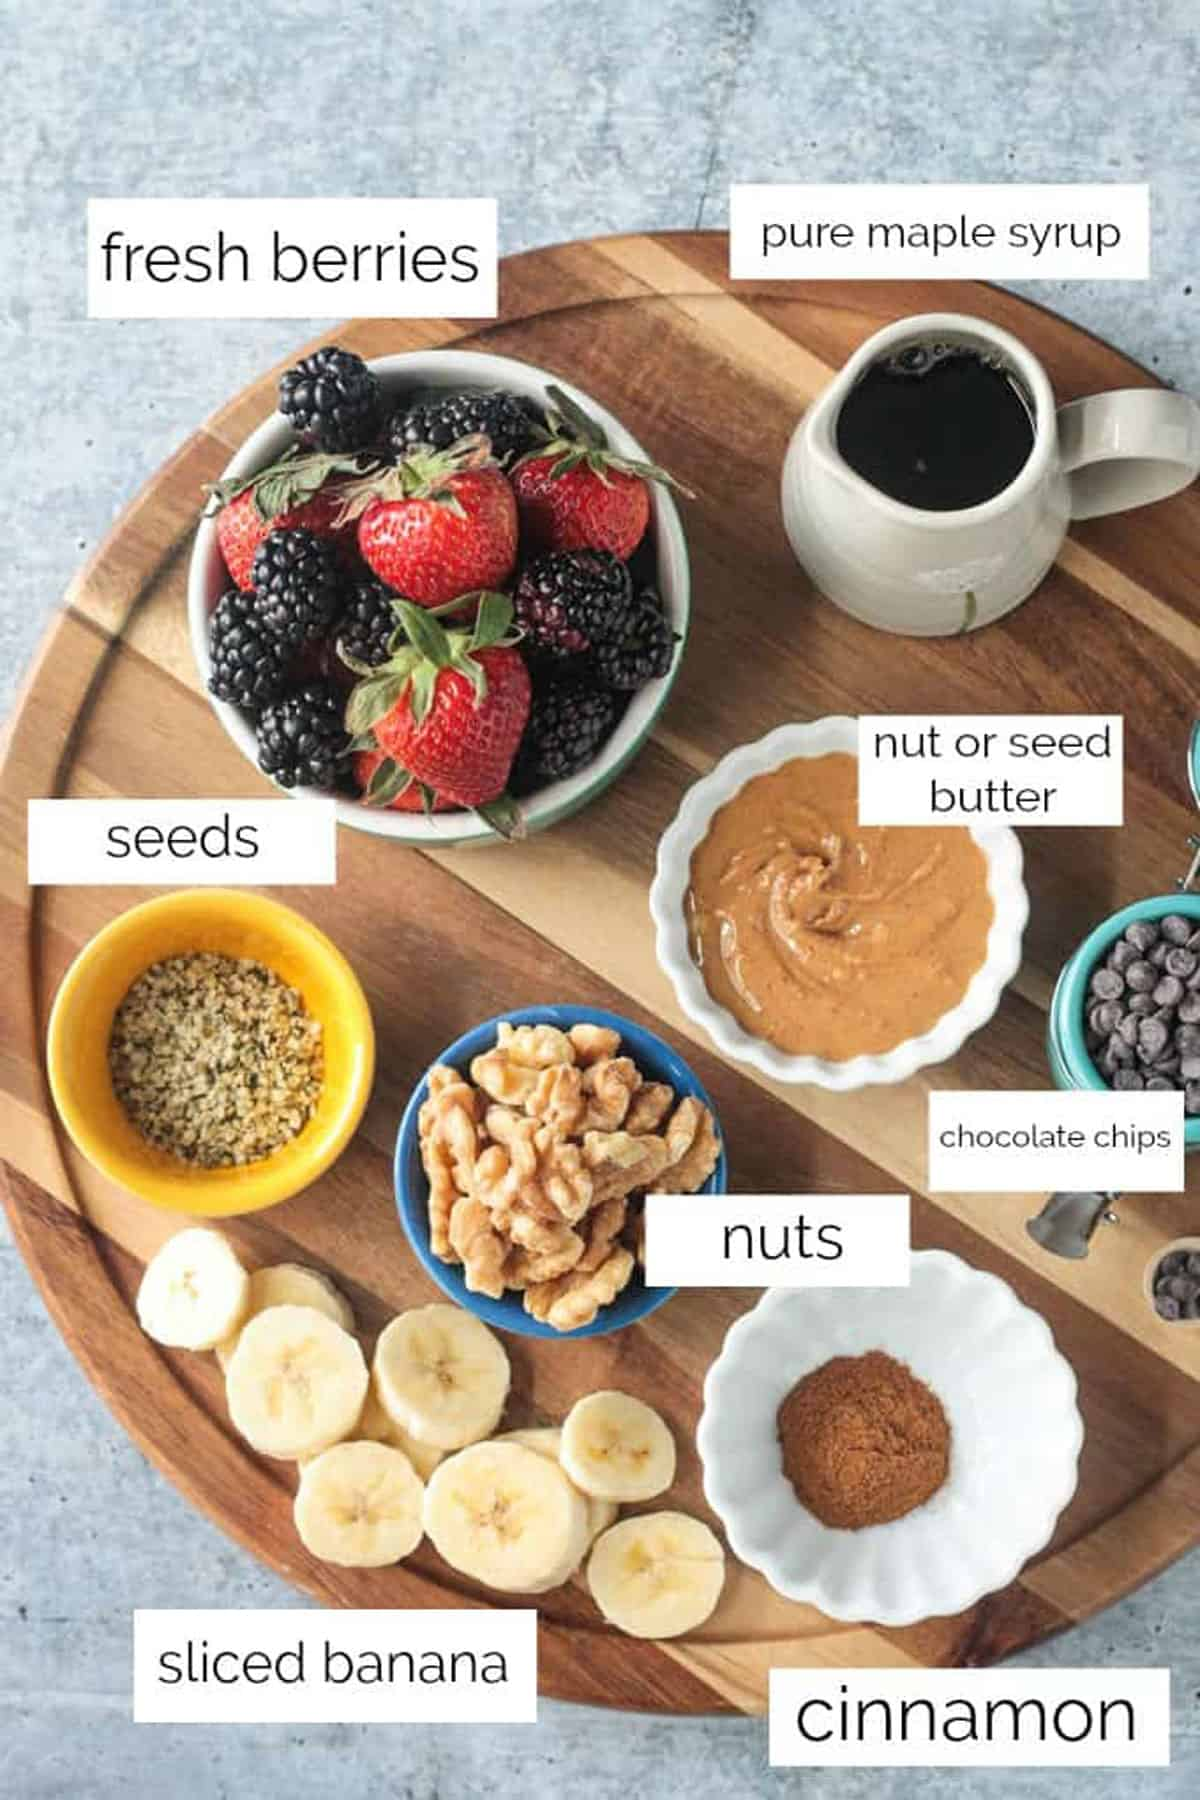 Topping ingredients arrayed in individual bowls on a wooden serving tray.